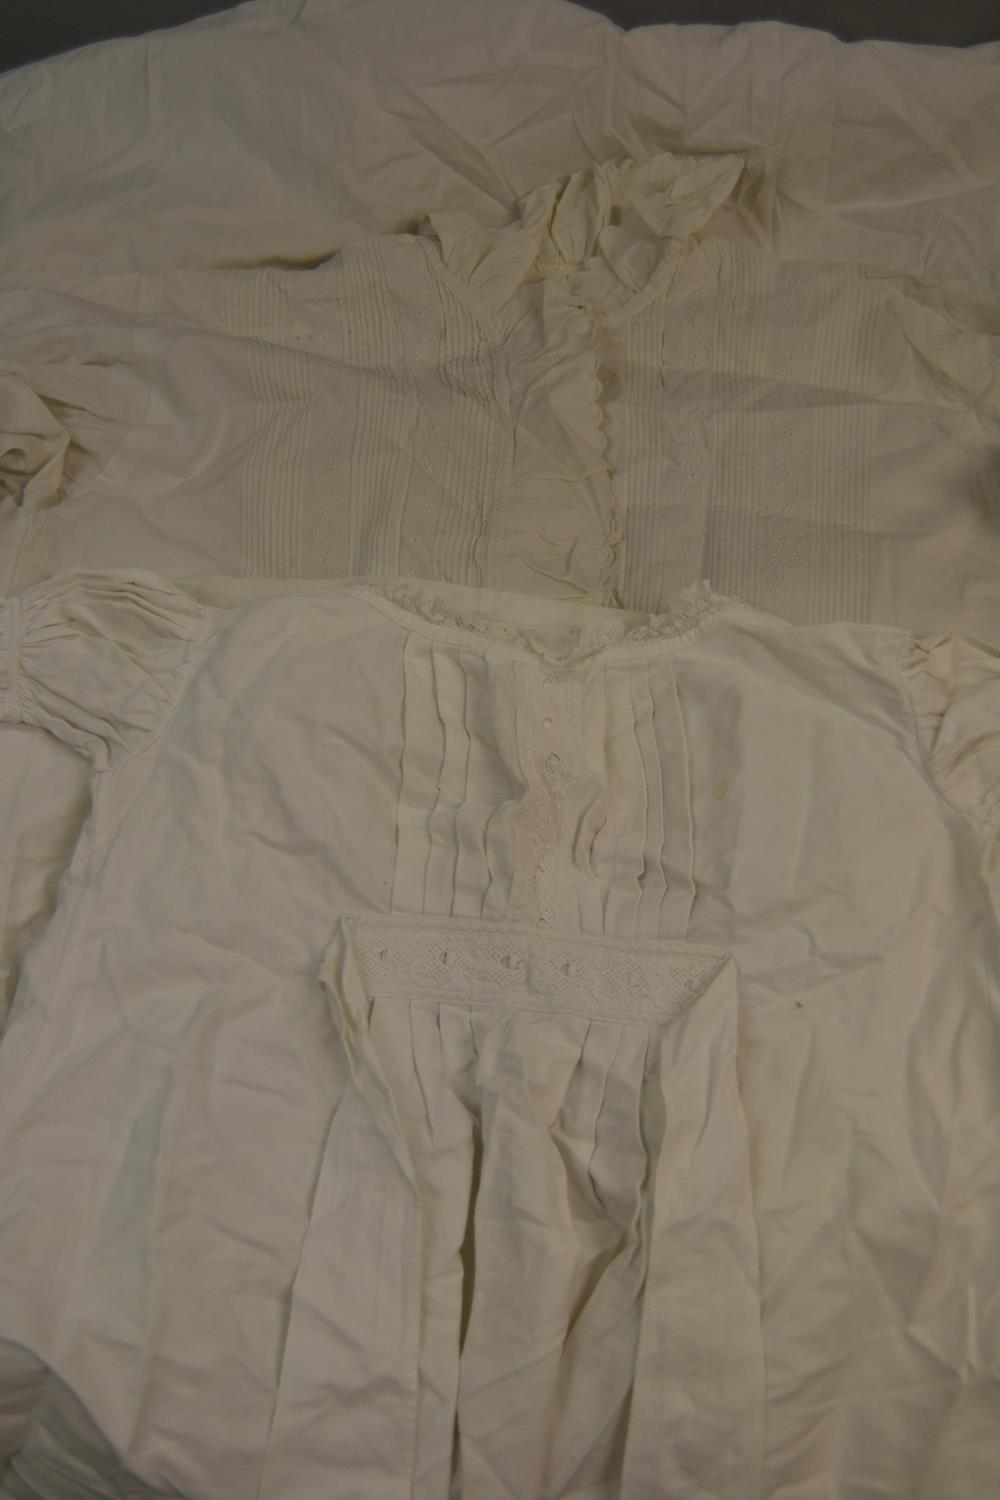 Lot 34 - Child's Christening gown together with a ladies linen nightgown